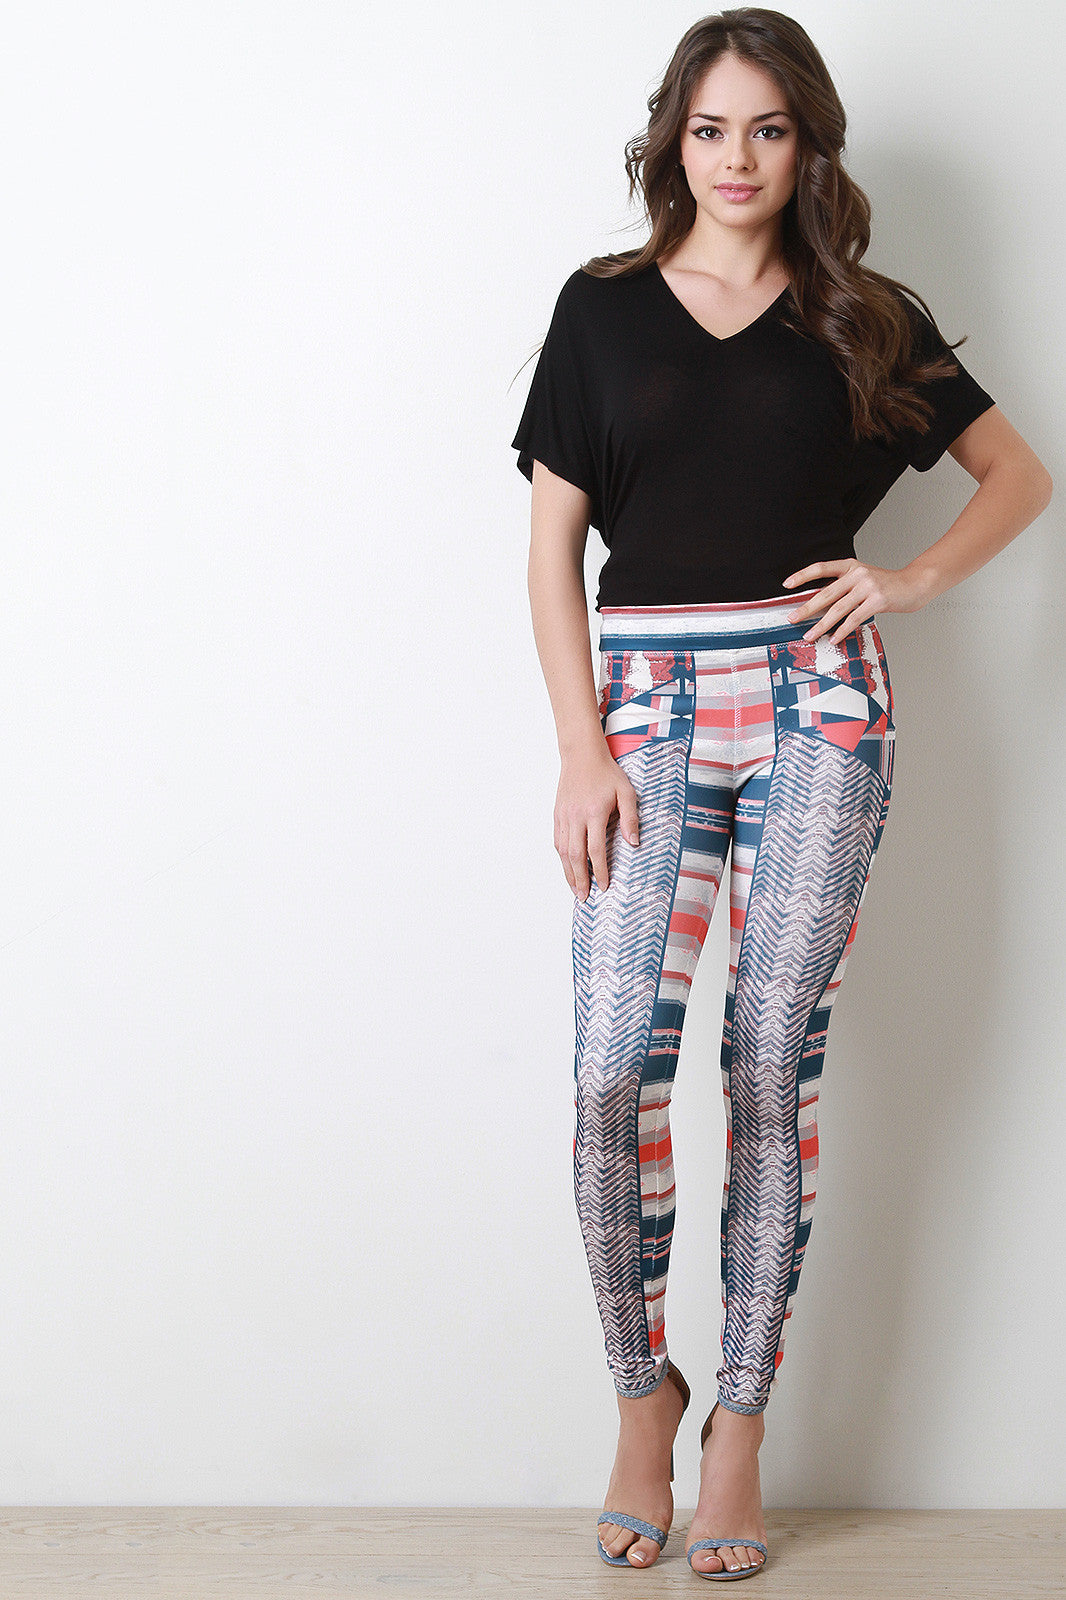 Geo Tribal Leggings - Thick 'N' Curvy Shop - 1